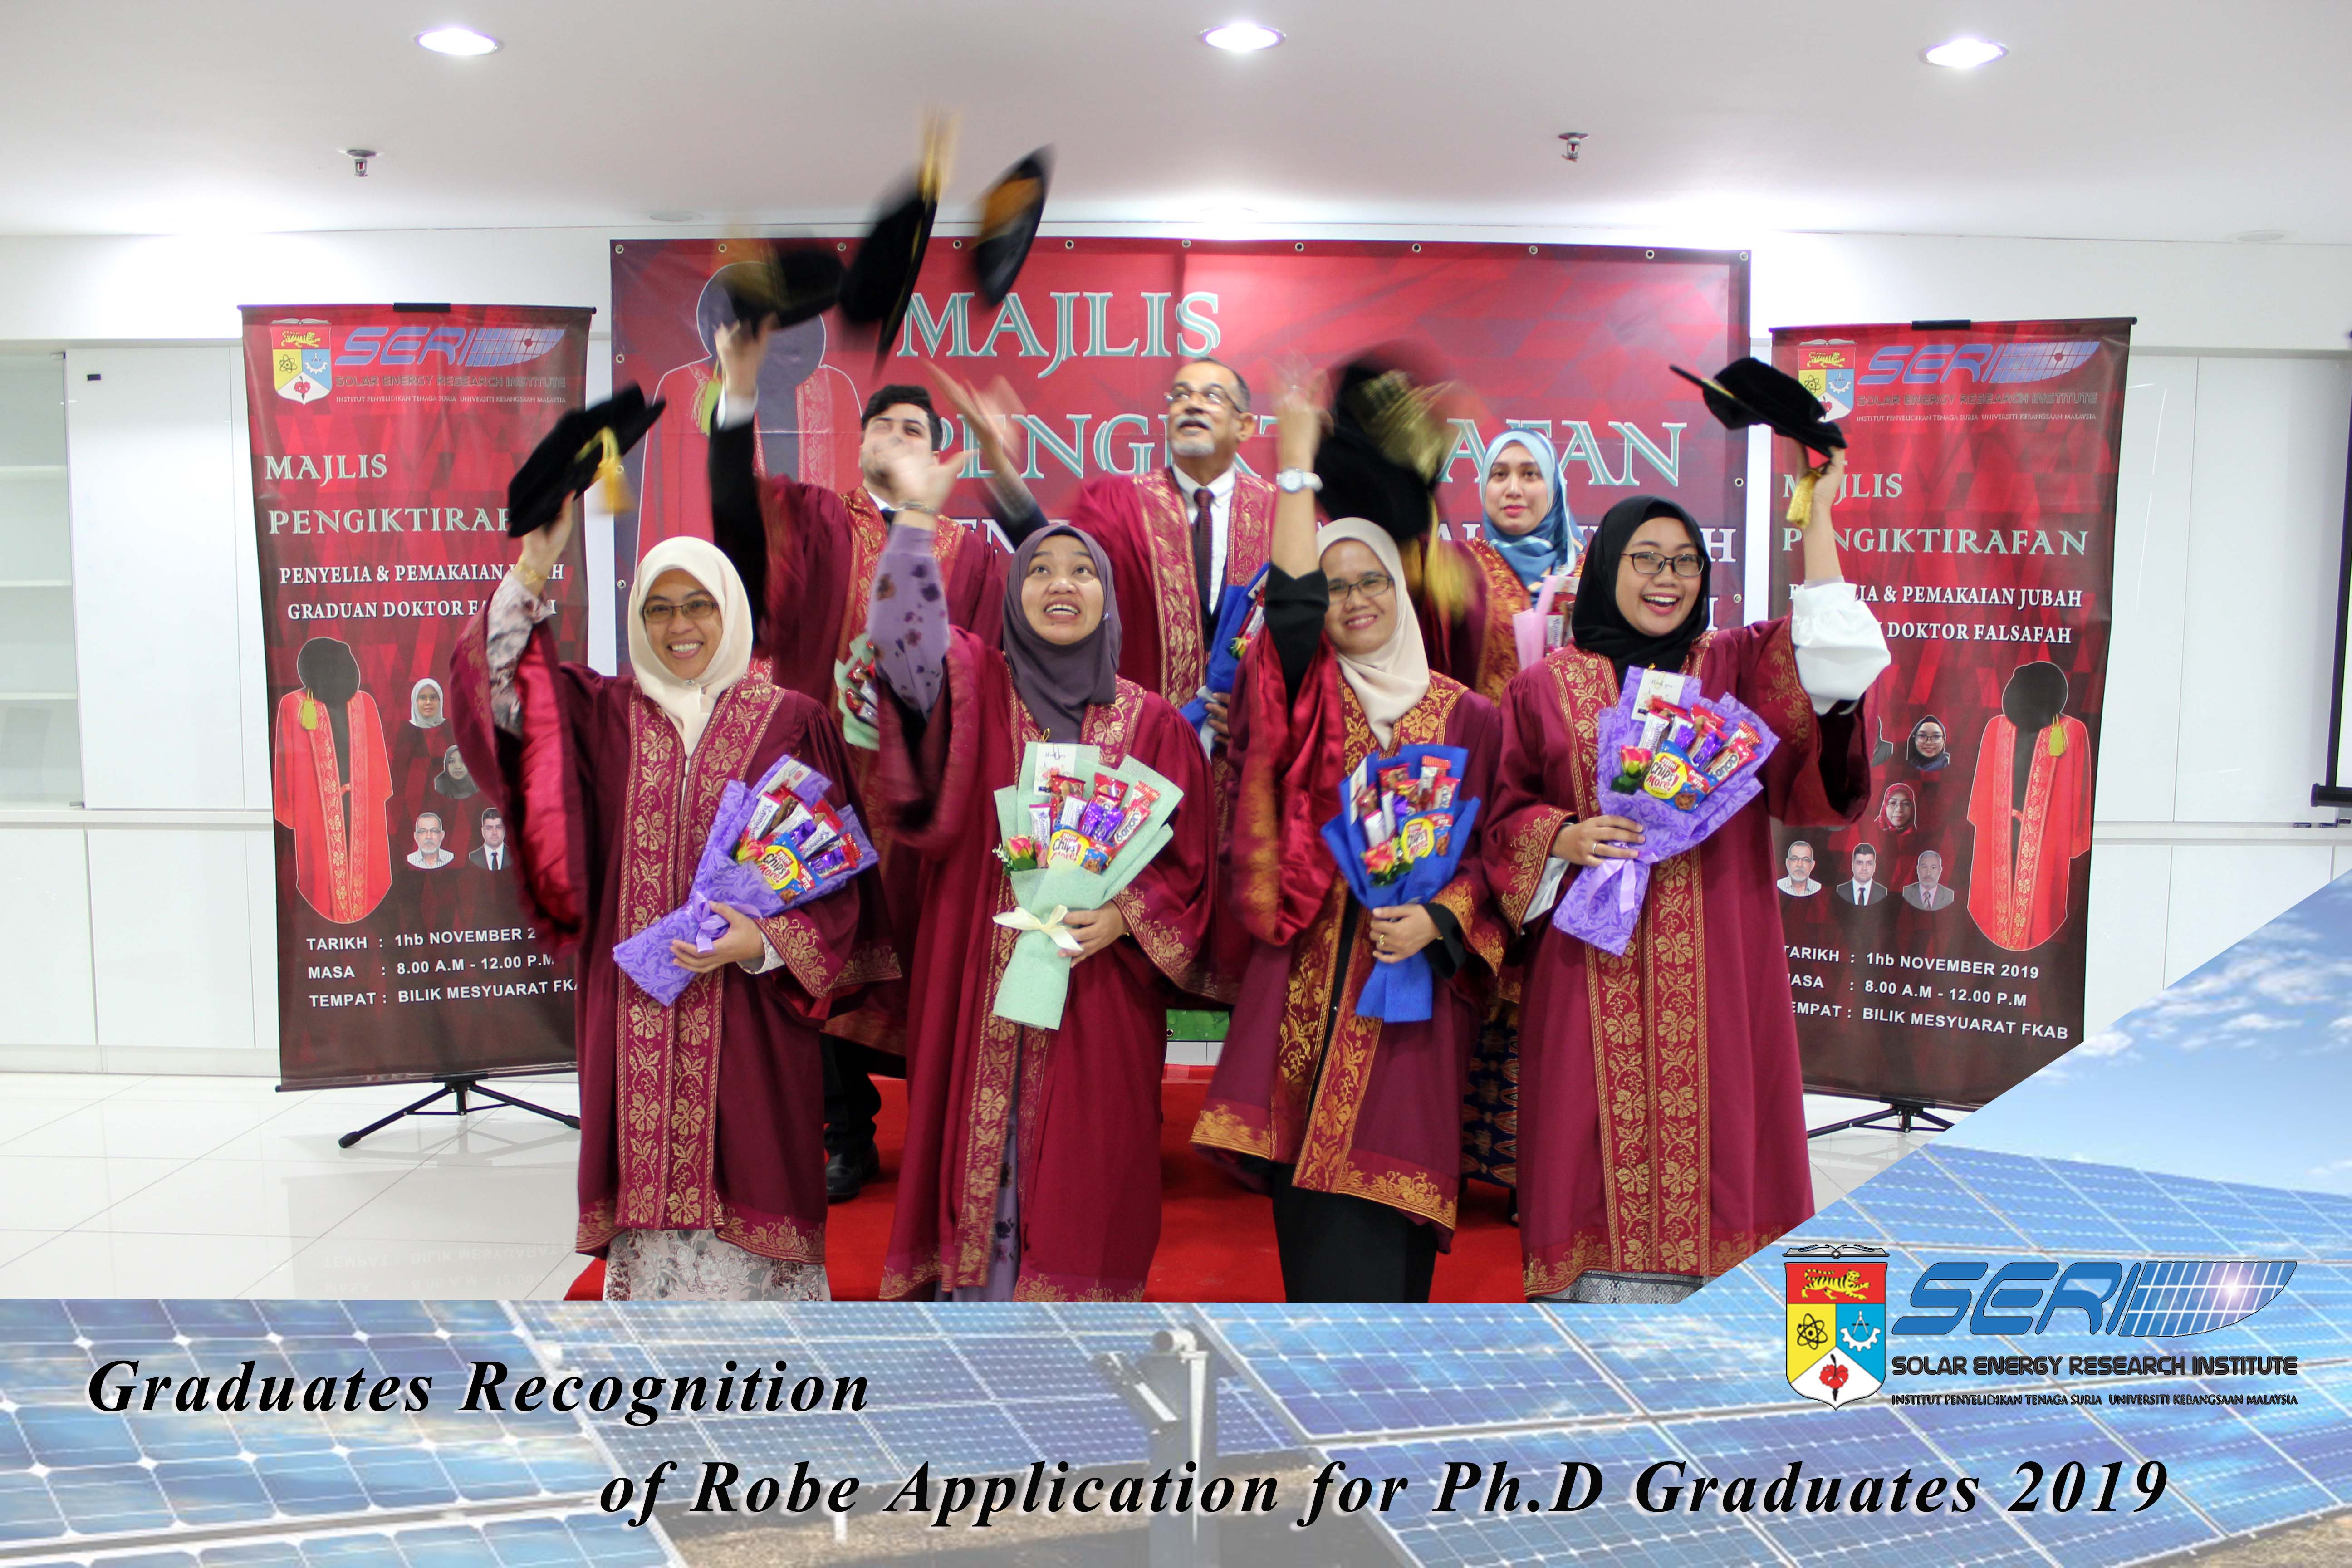 Graduates Recognition Ceremony of Robing Application for PhD Graduates